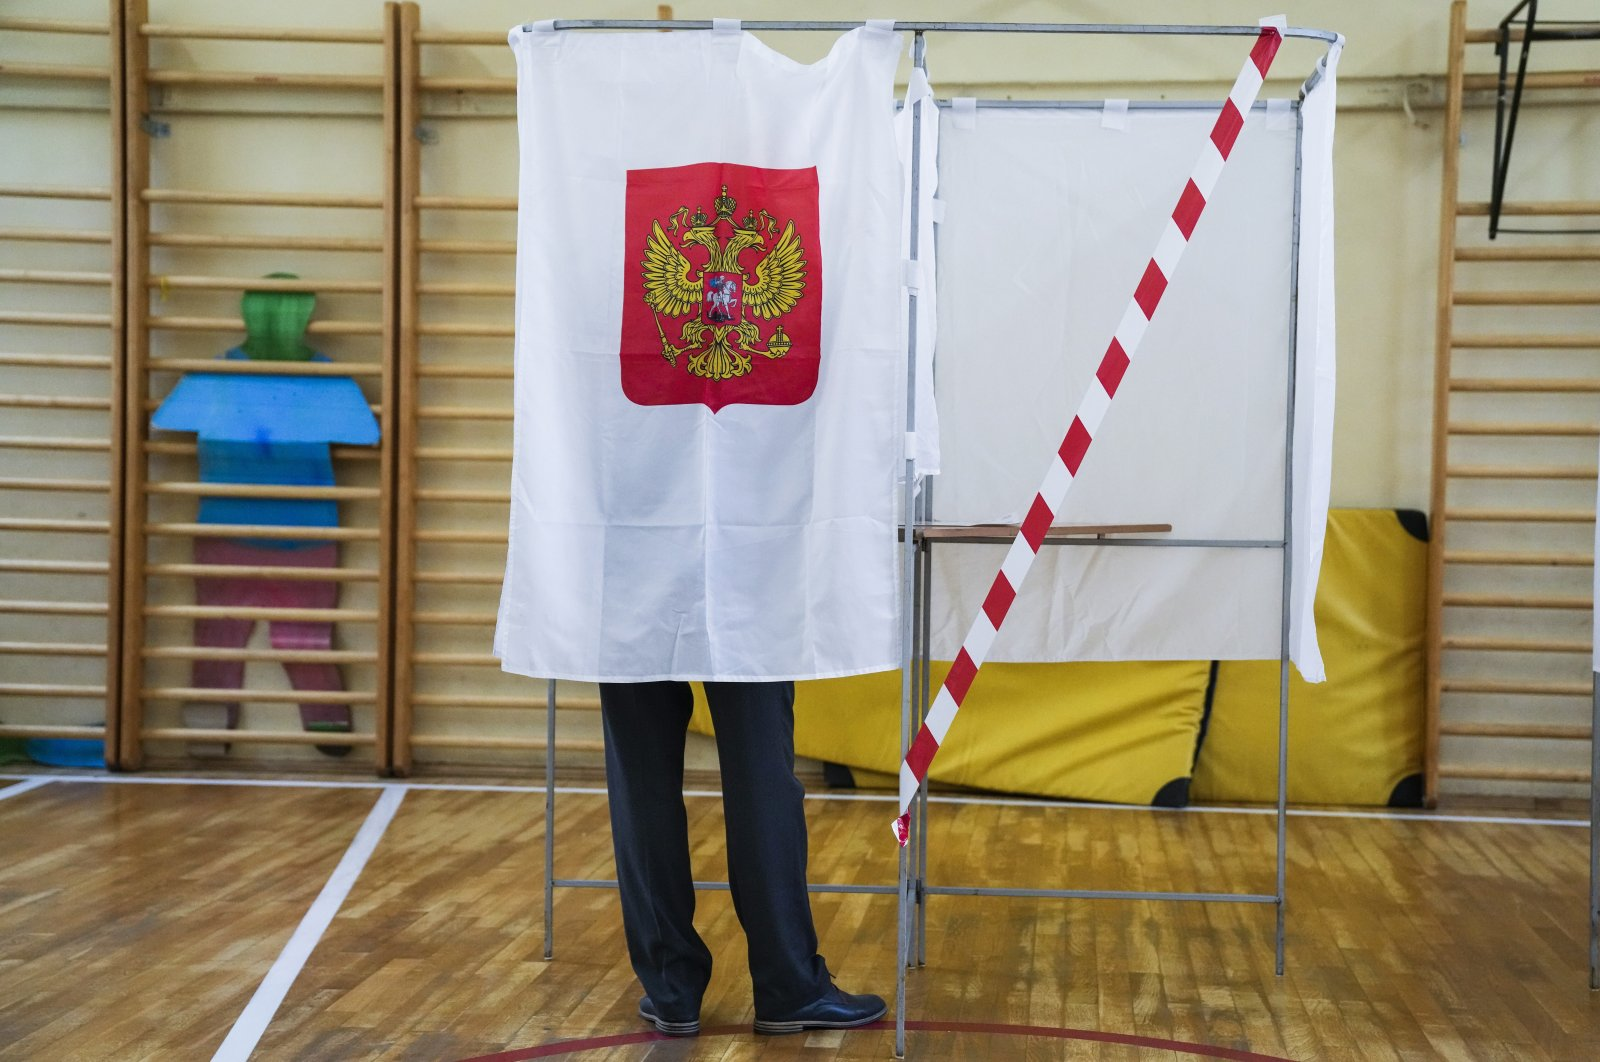 A man fills out his ballot in a voting booth during the parliamentary elections in Moscow, Russia, Sept. 17, 2021. (AP Photo)